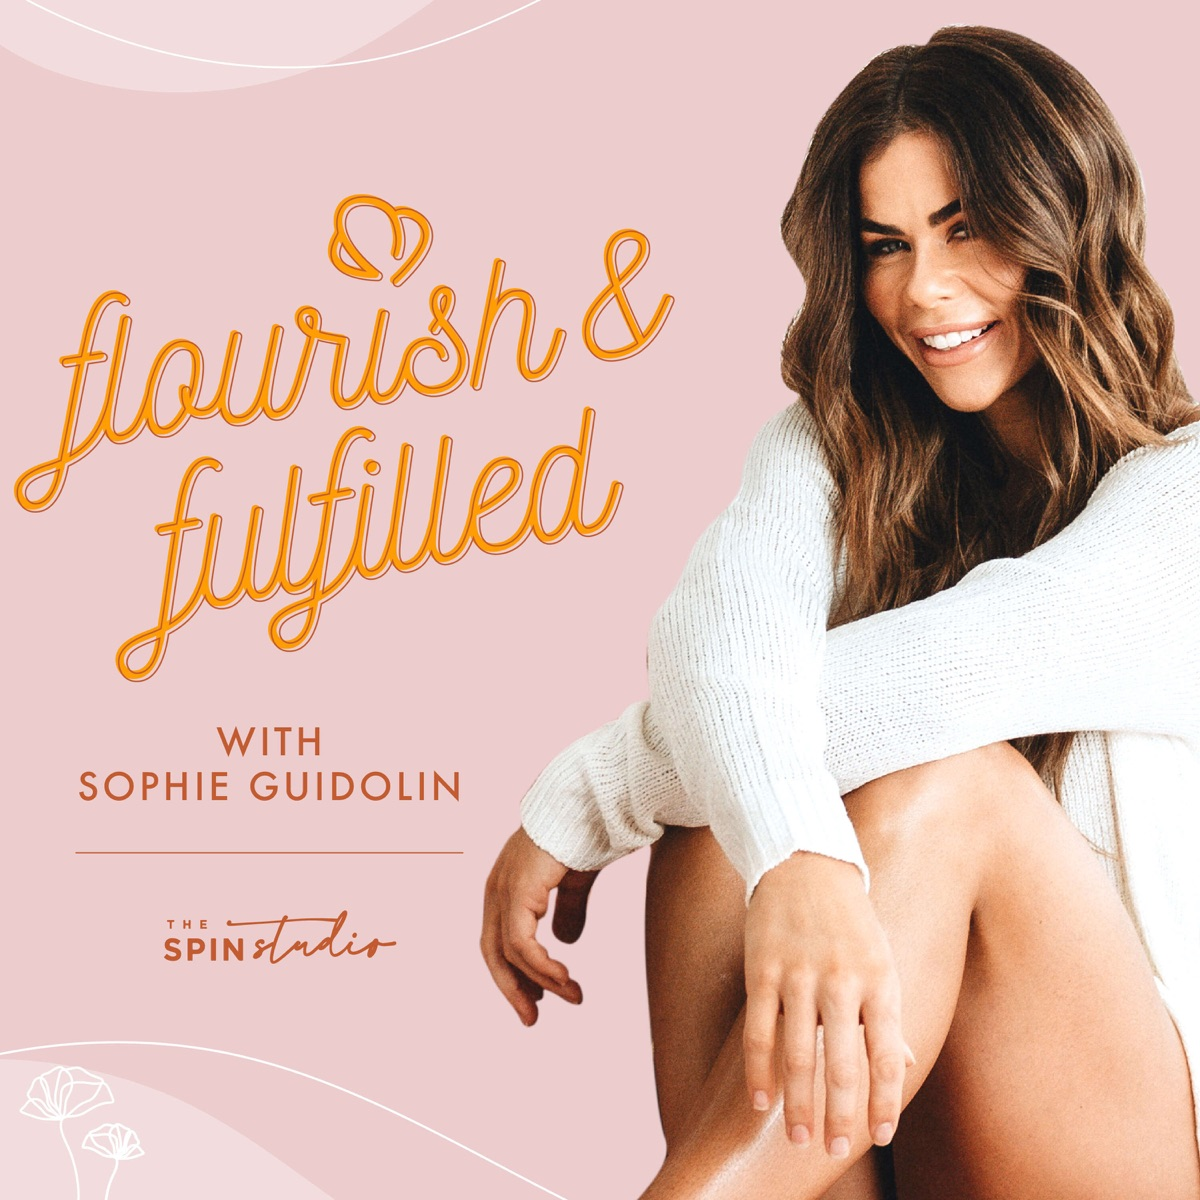 Flourish & Fulfilled with Sophie Guidolin